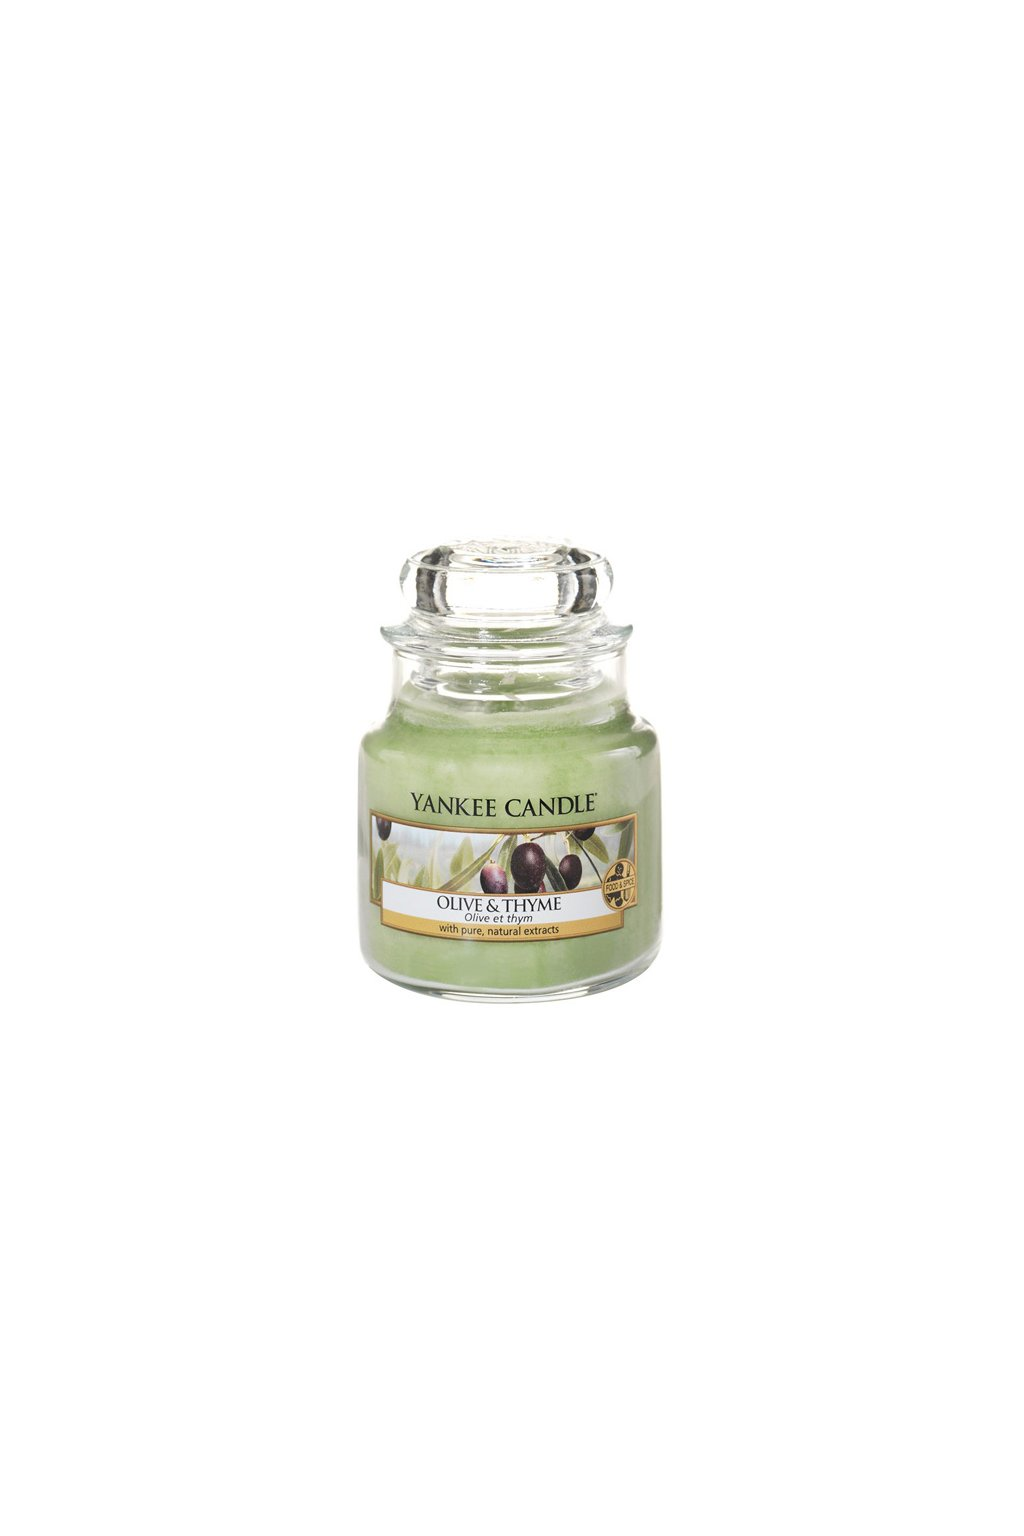 Yankee Candle Olive and Thyme 104g